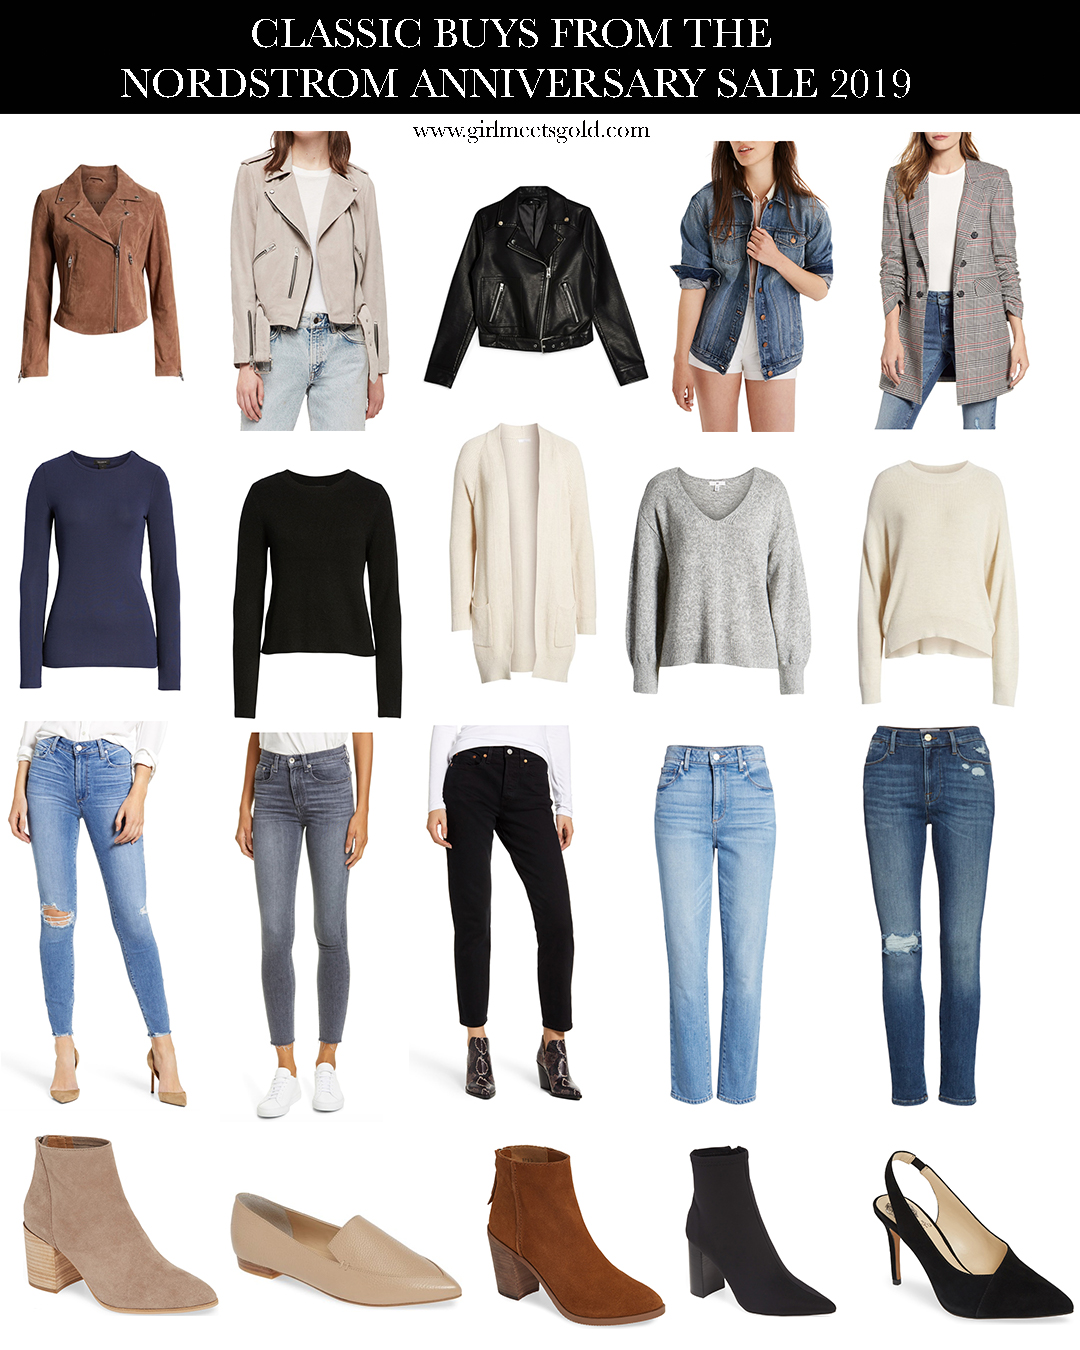 Classic Buys & Favorites From The Nordstrom Anniversary Sale 2019 | www.girlmeetsgold.com